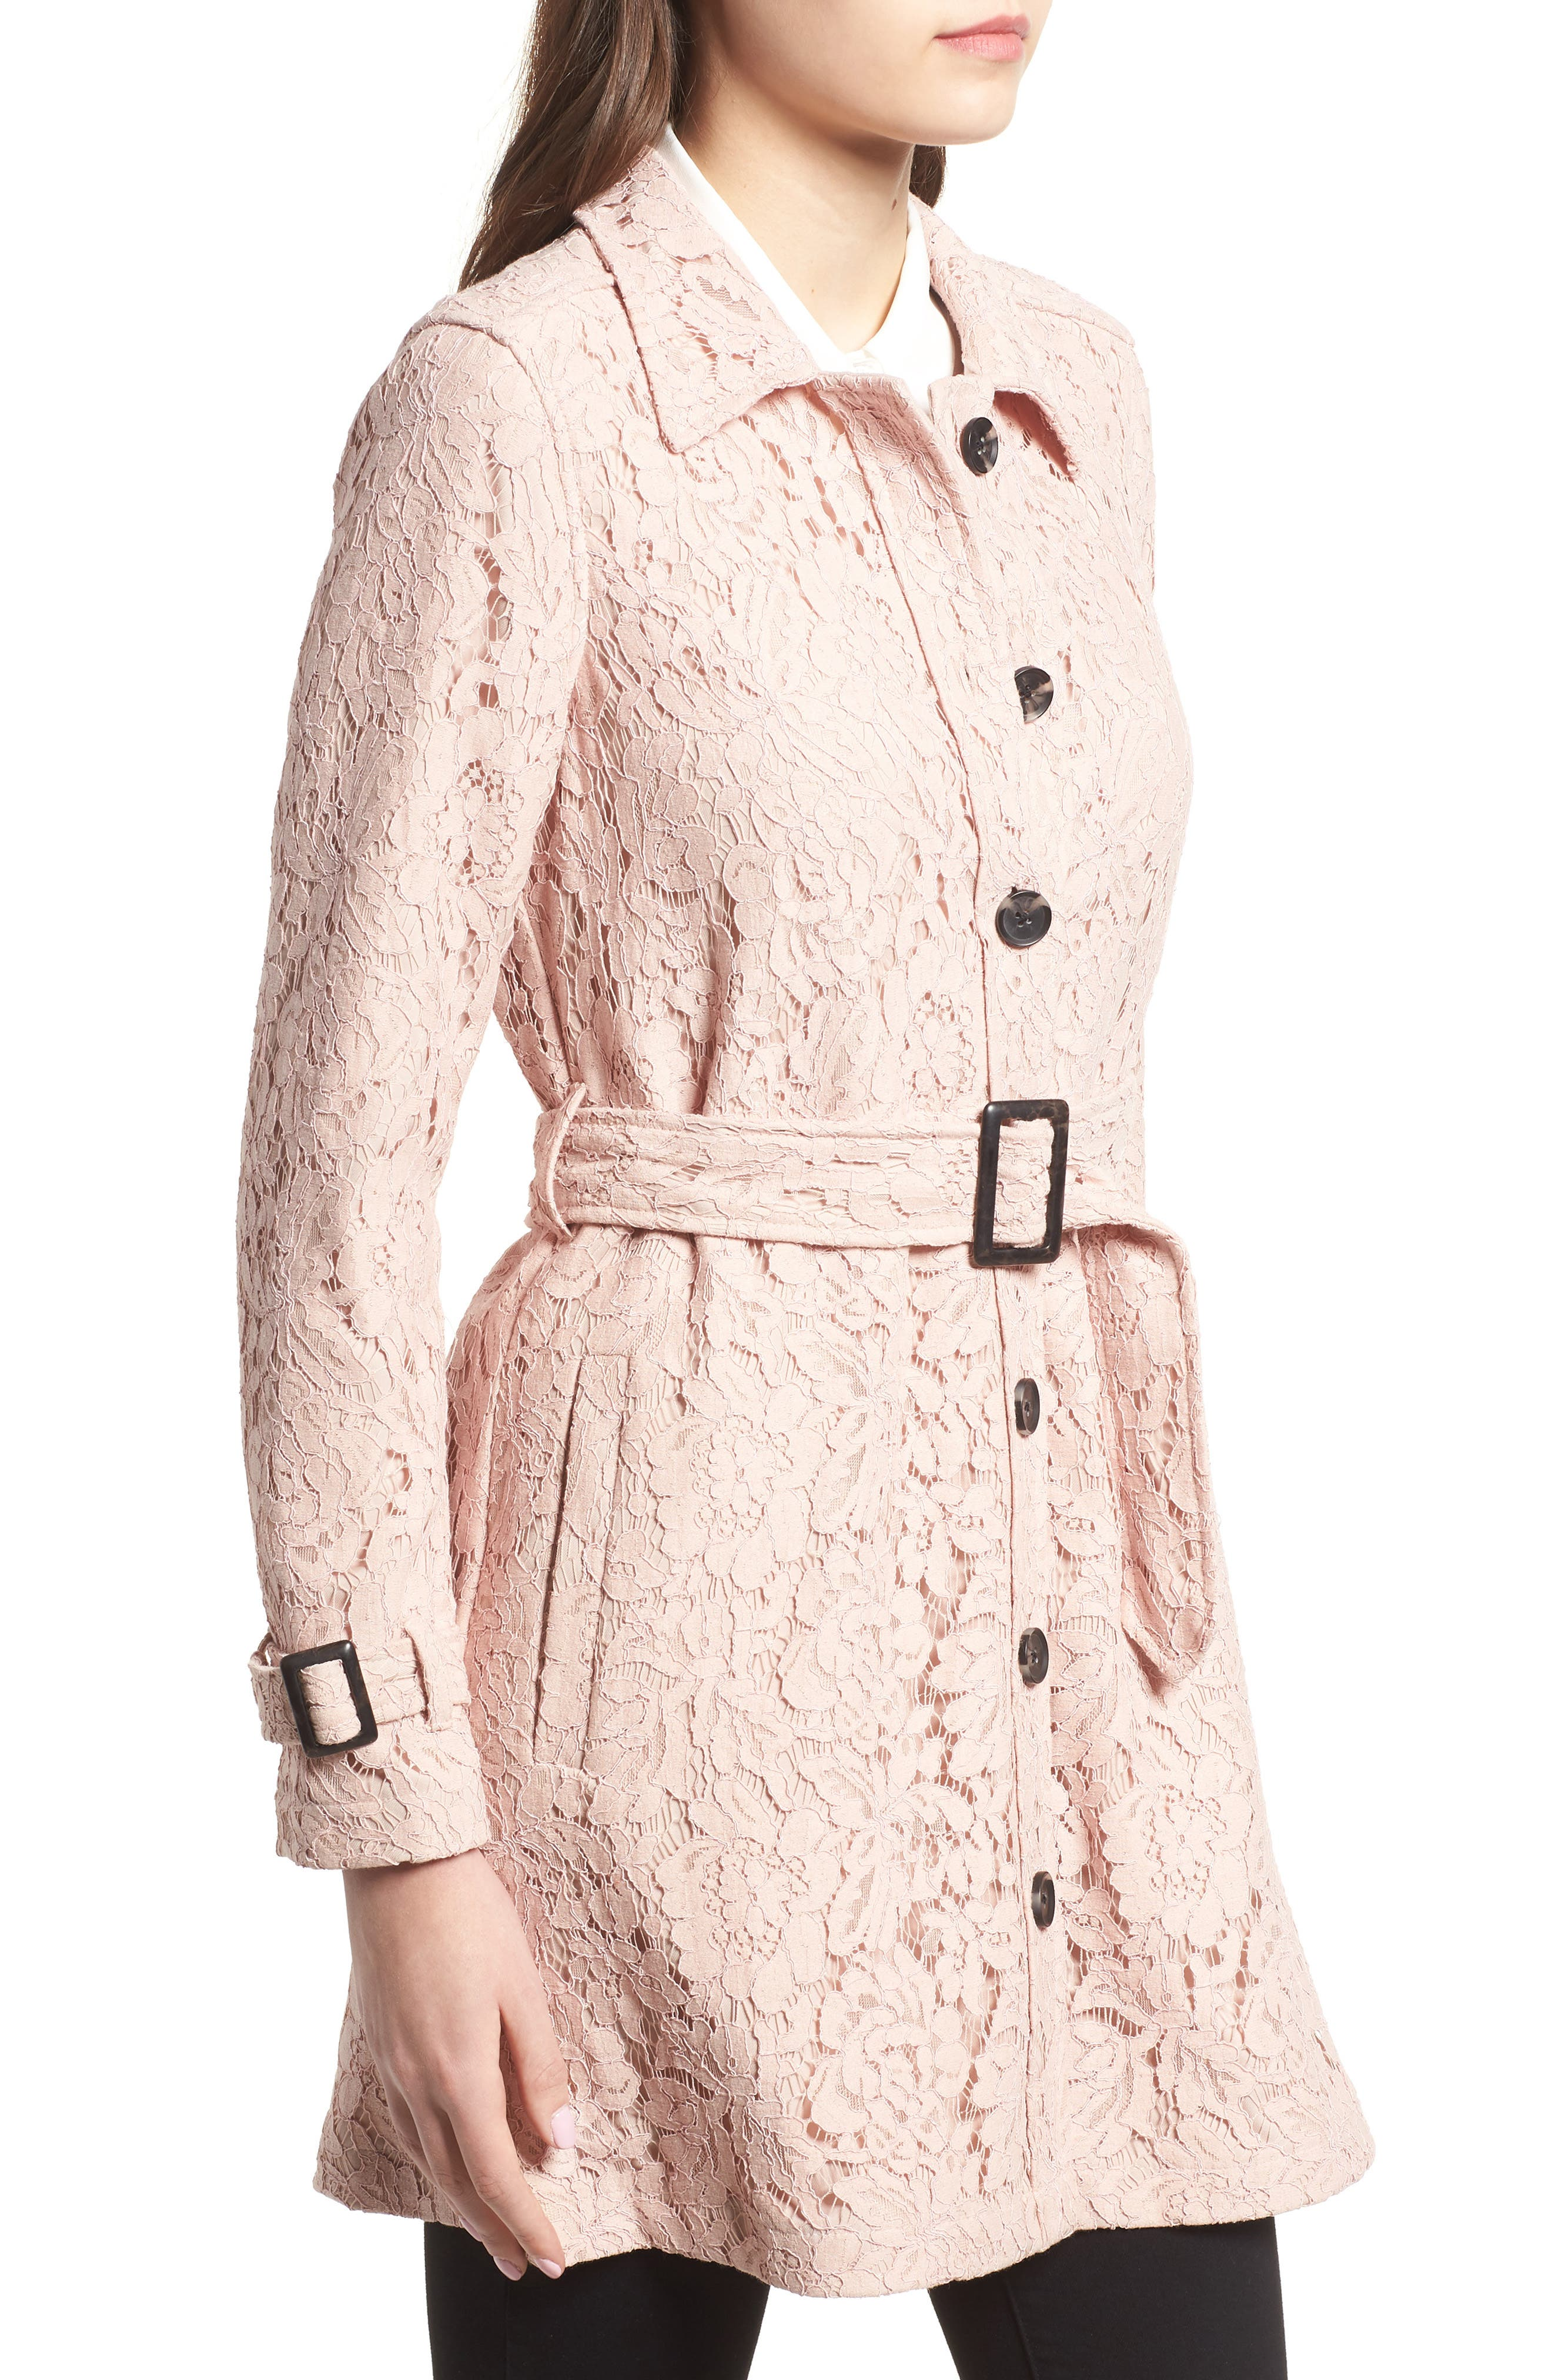 Auretta Lace Trench Coat,                             Alternate thumbnail 3, color,                             680